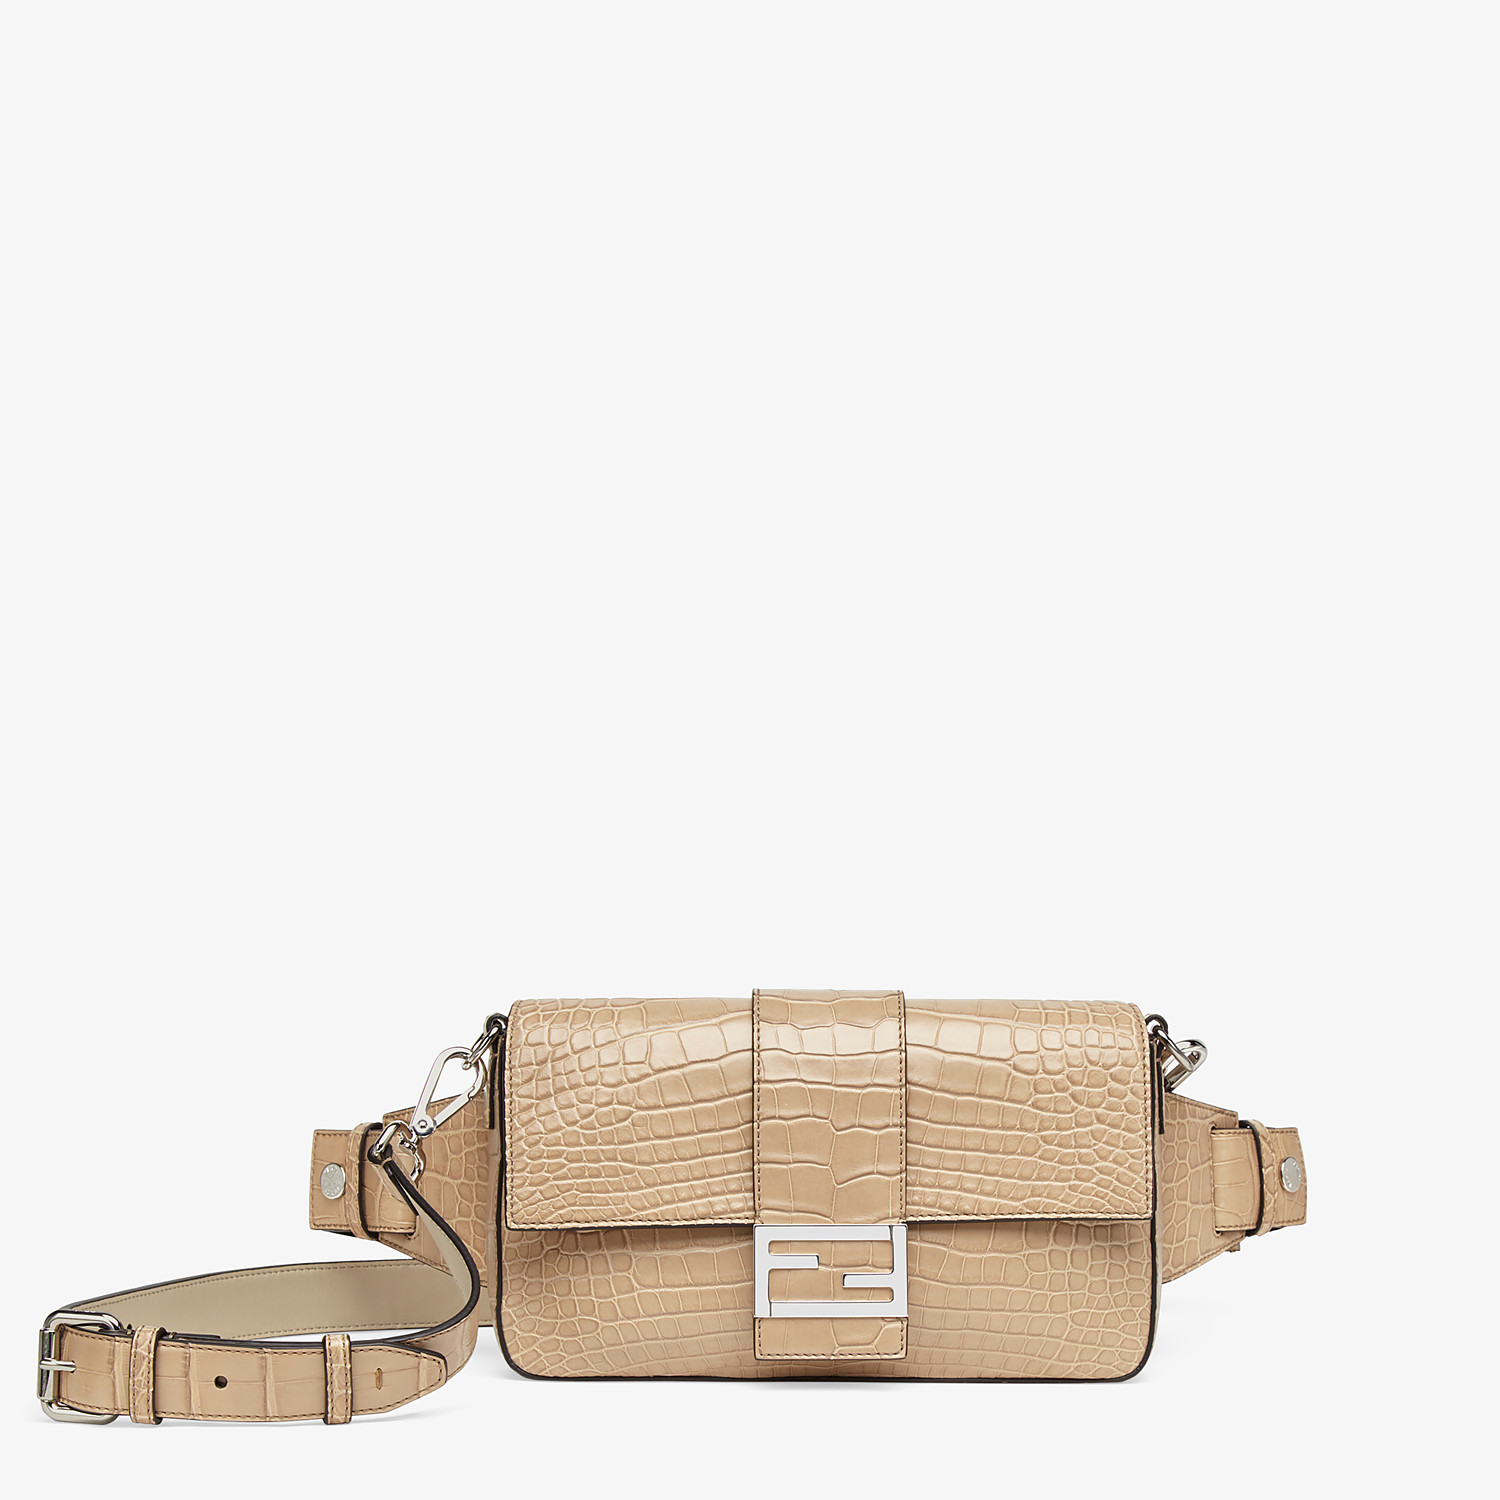 FENDI BAGUETTE - Beige alligator bag - view 1 detail